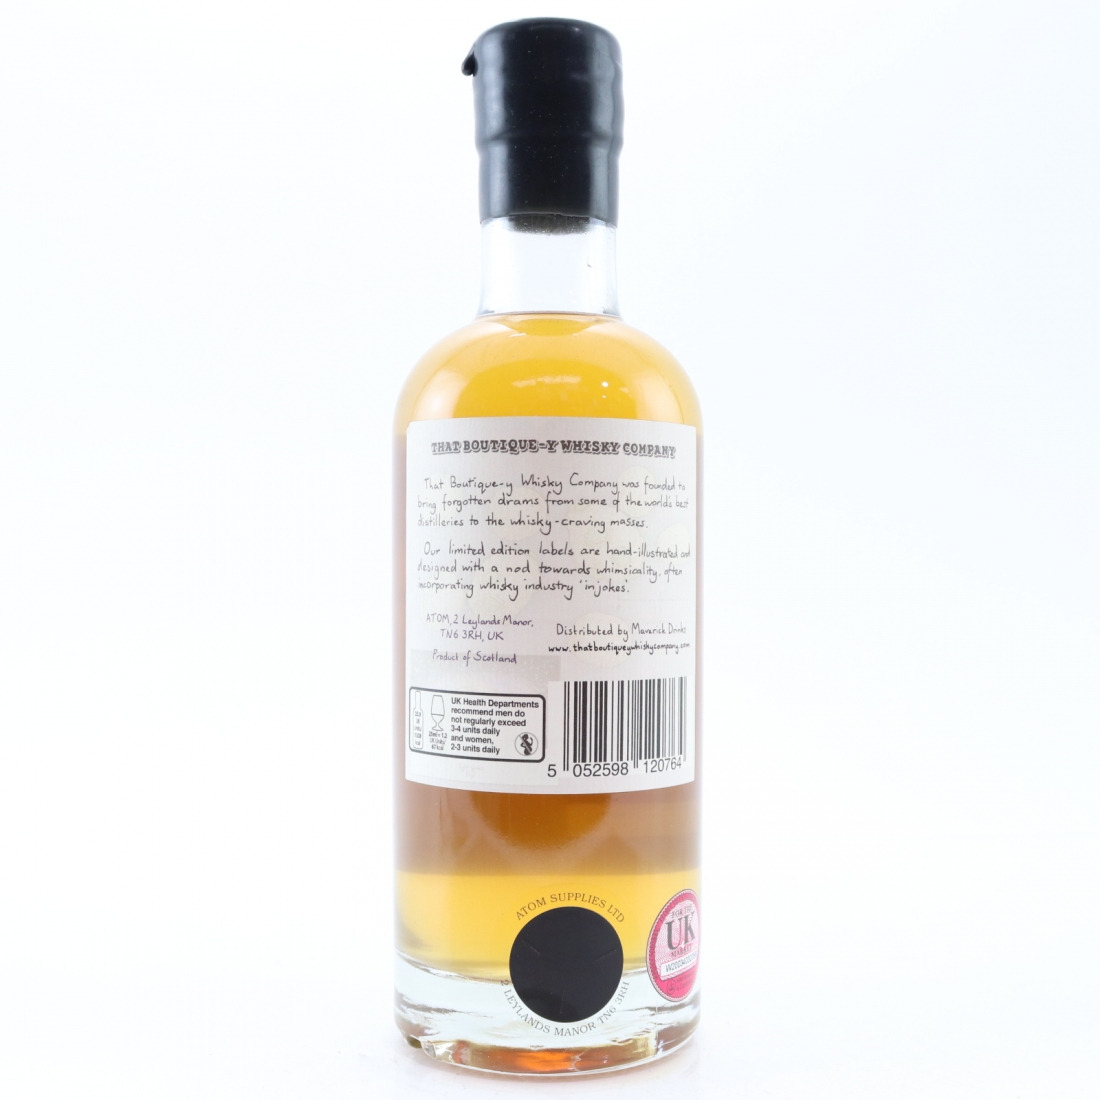 Bladnoch 26 That Boutique-y Whisky Company Batch #1